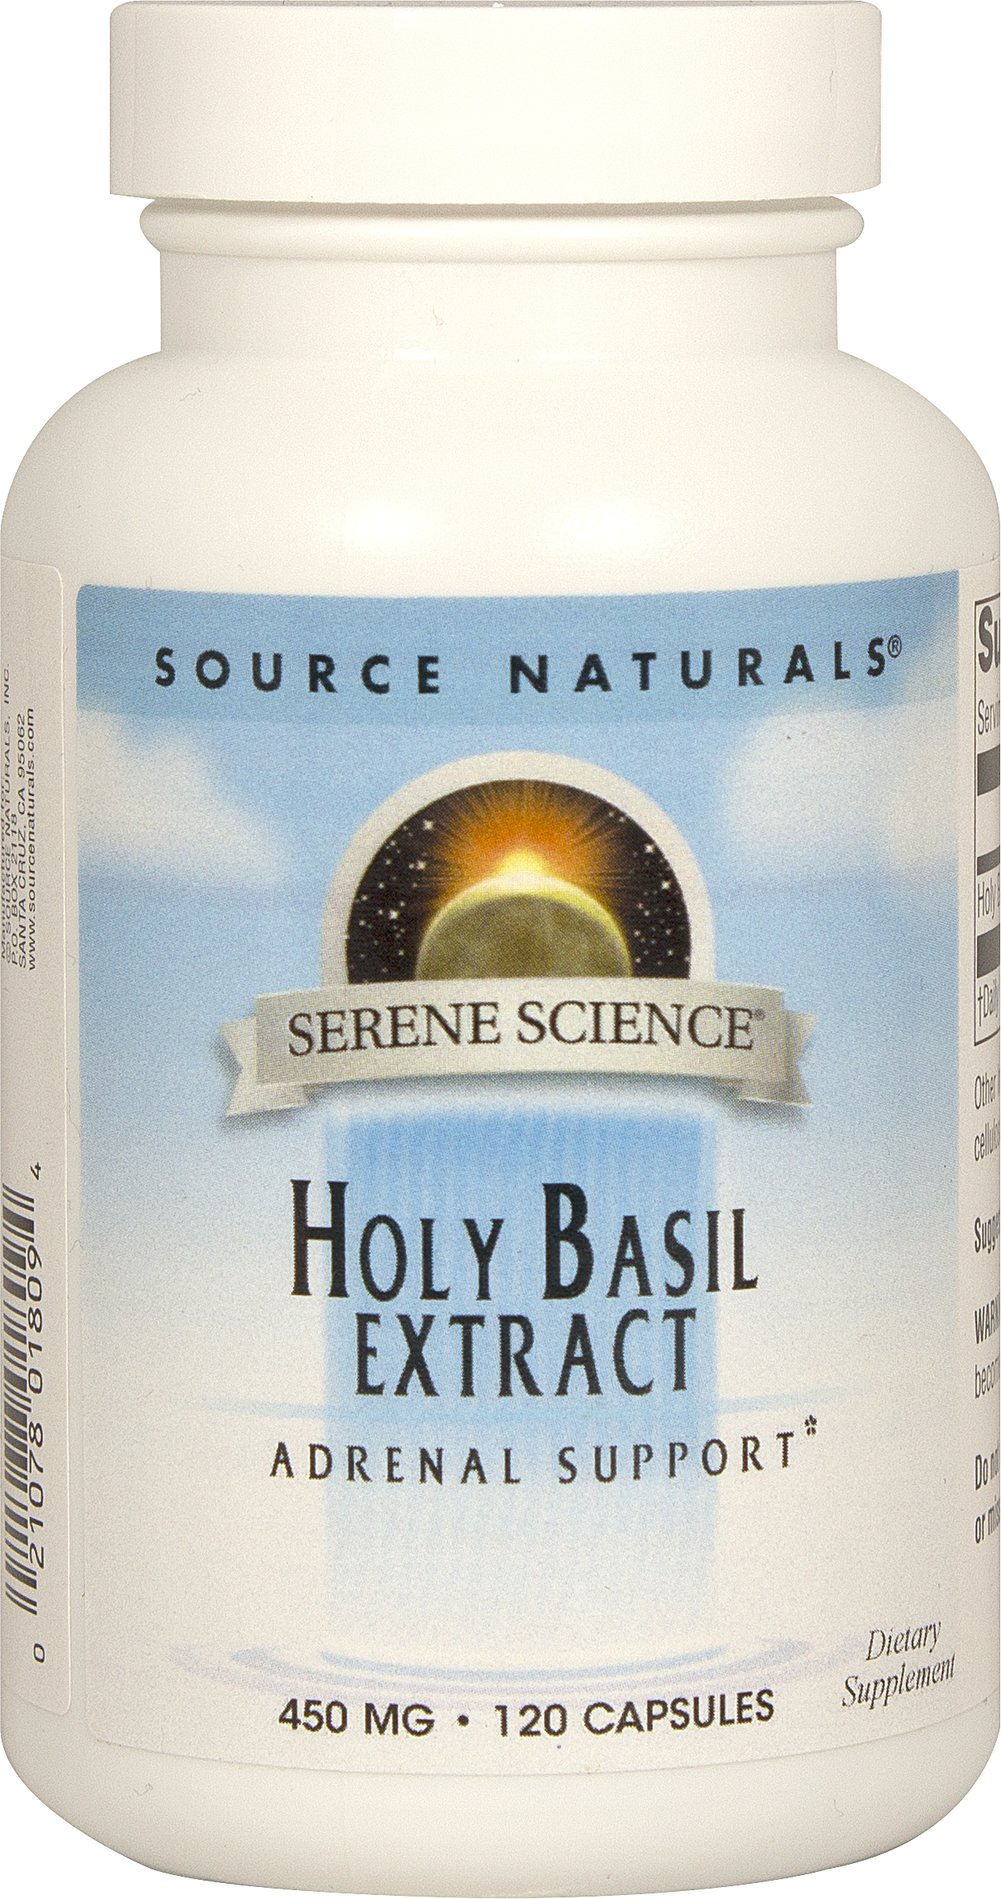 Holy Basil Extract 450 mg <p><strong>From the Manufacturer's Label:</strong></p><p>Holy basil is one of the primary botanicals used in Ayurvedic practice in India.  It is a powerful adaptogen that helps your body adapt to the negative effects of stress.  Holy basil may help maintain normal blood sugar levels.**</p><p>Manufactured by Source Naturals.</p> 120 Capsules 450 mg $12.99